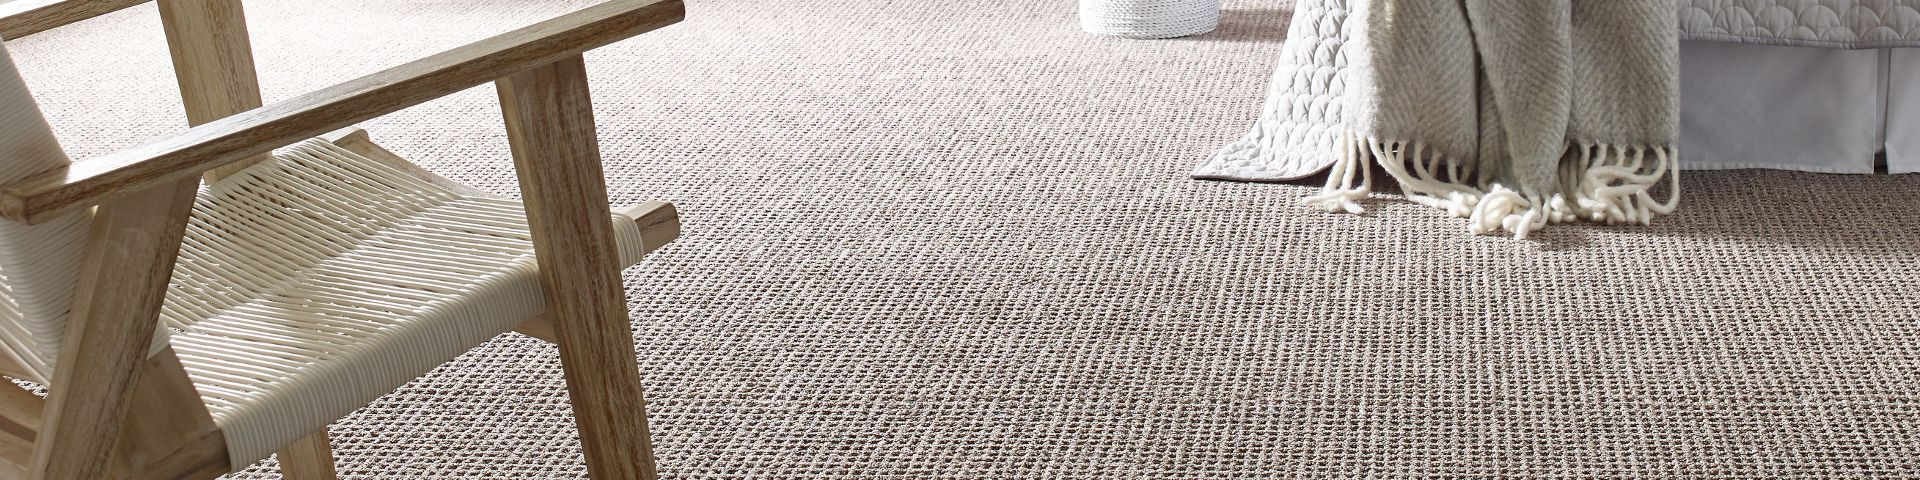 Carpet Natural Boucle e9634 00500 Slate Bedroom Color of the Year Whisper 2019